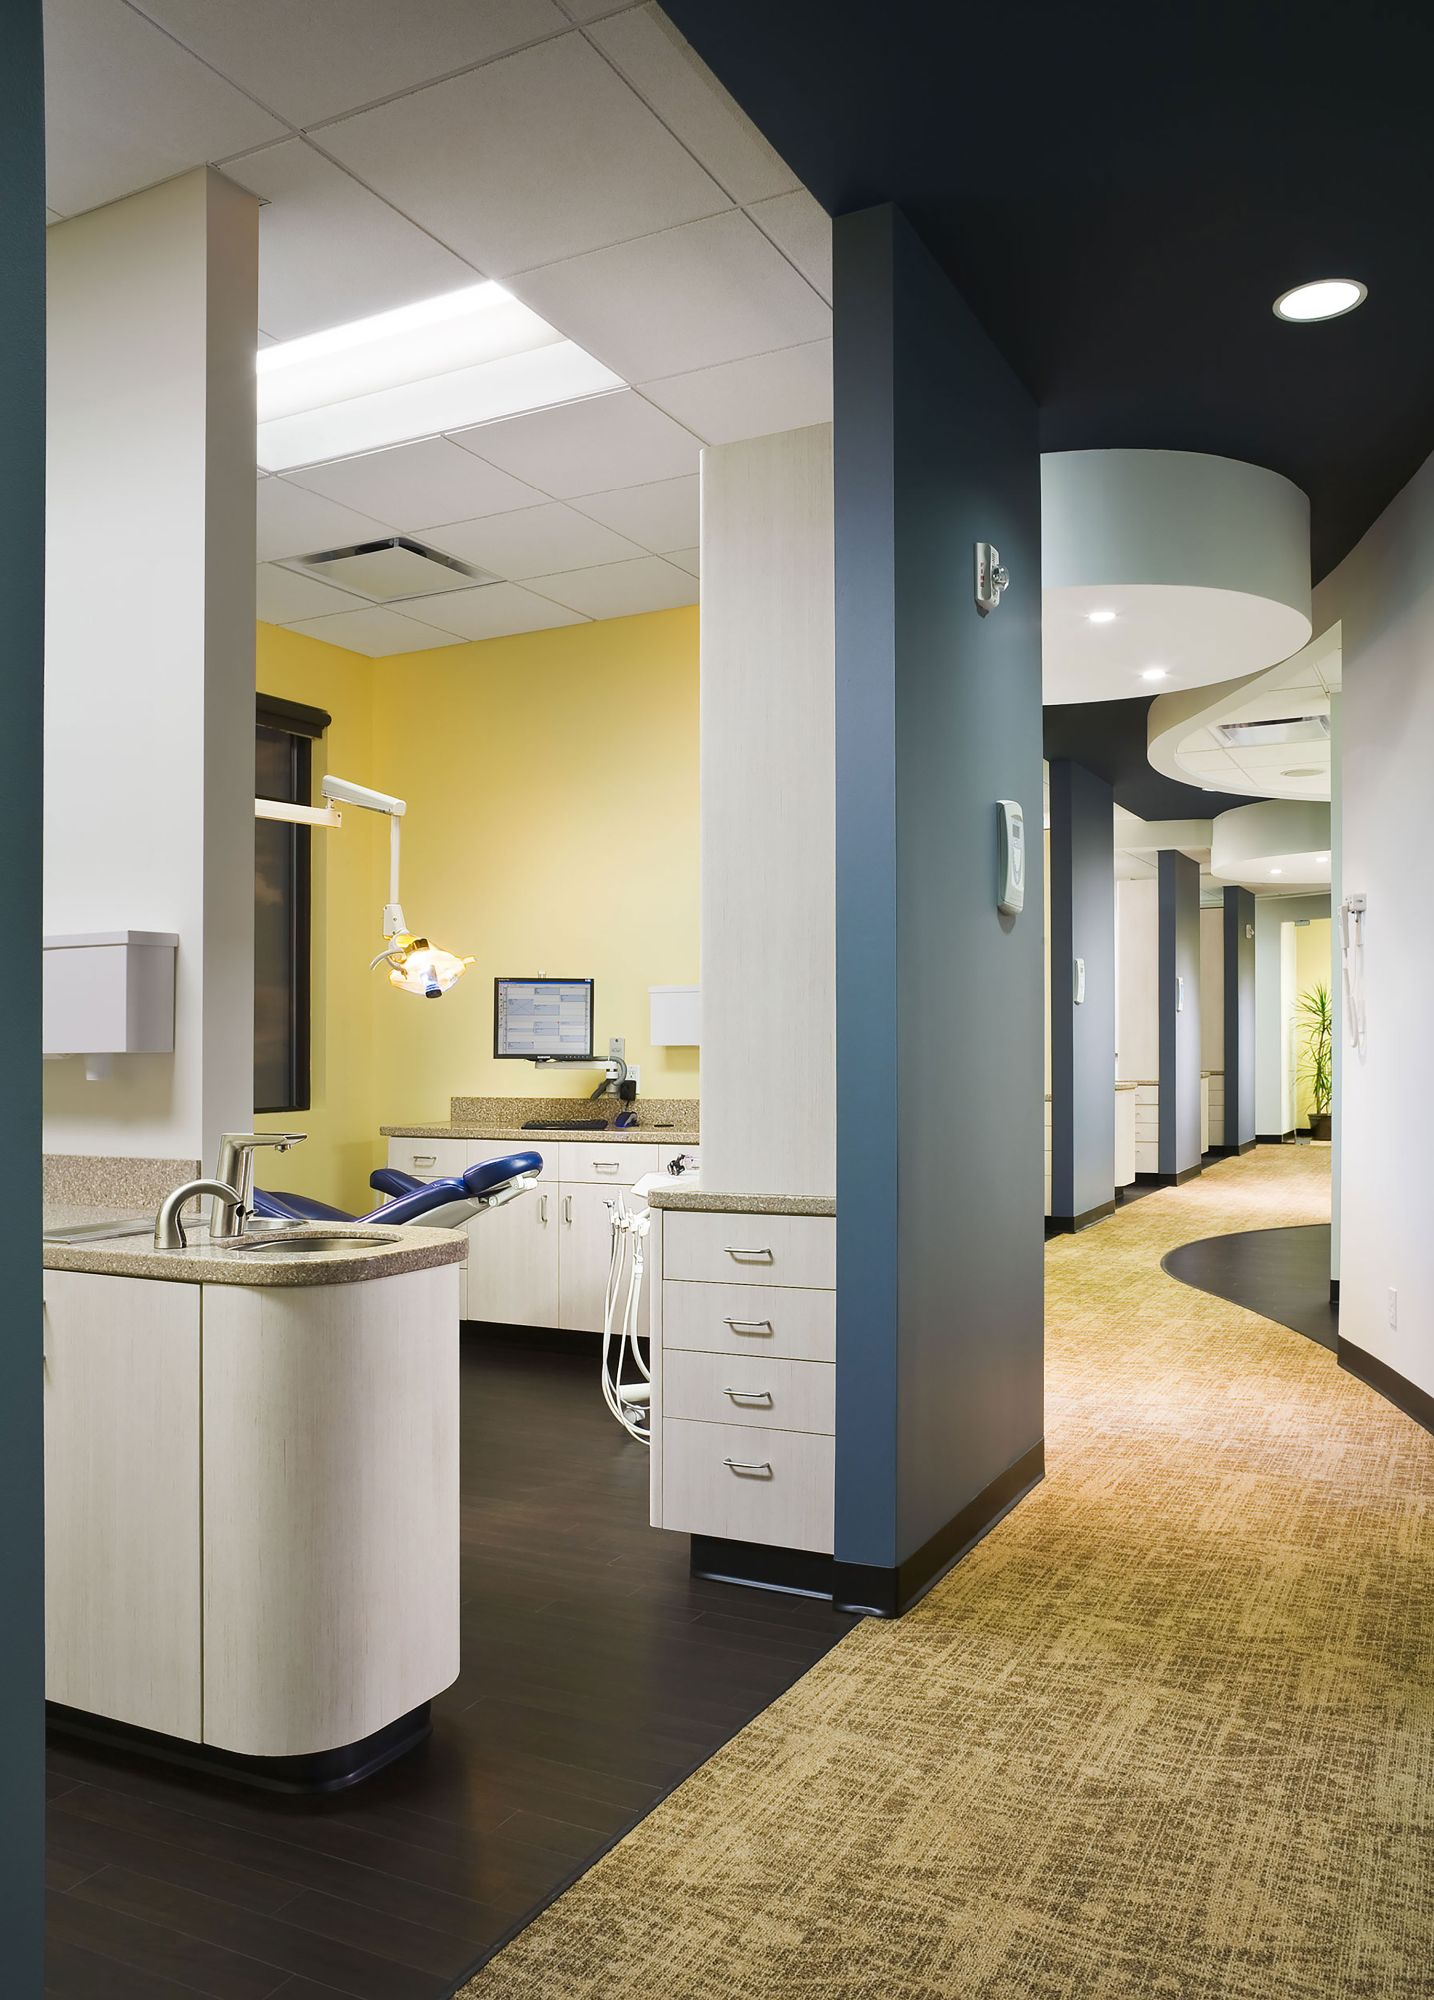 Andrew Sewell Patient Area